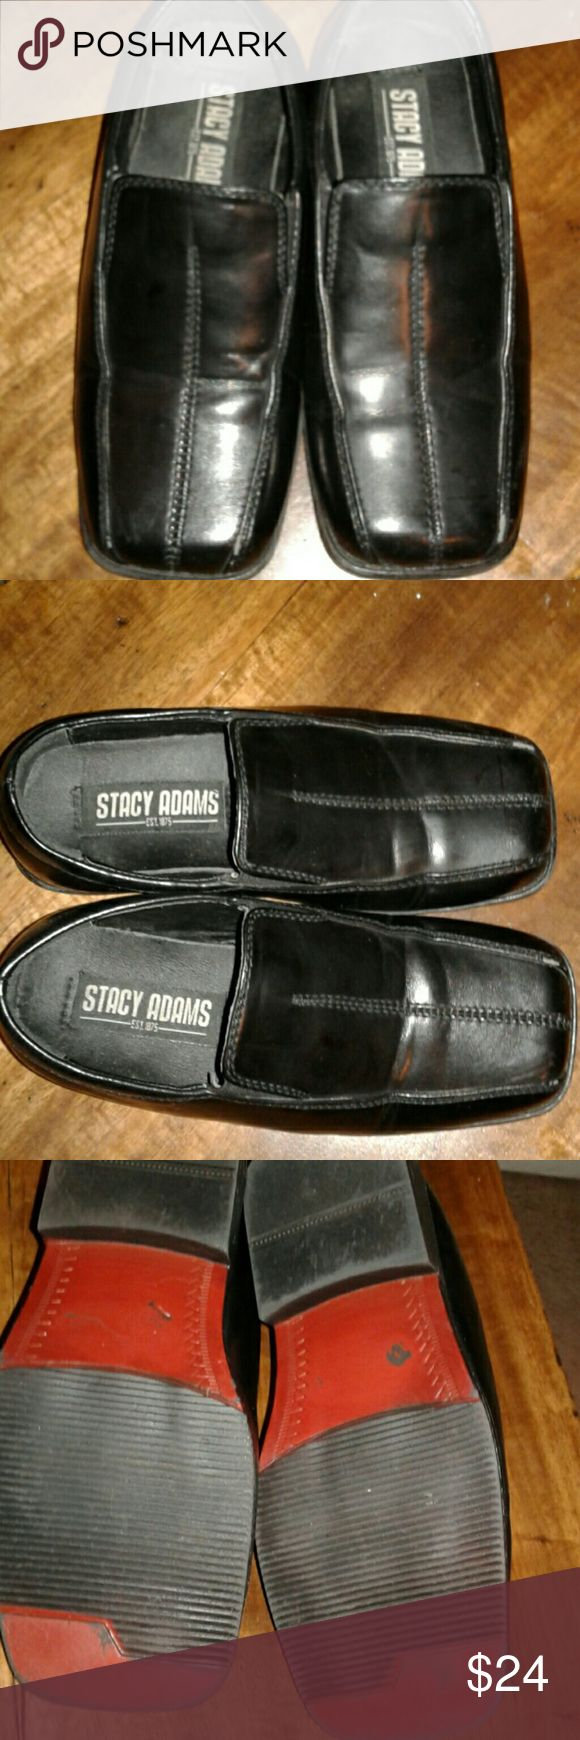 """Stacy Adams Boys Canton Bike toe Shoes A very gently used,looks almost brand new,dress bike toe slip on shoes.Please see bottom,to see they were hardly worn. Very nice and what a great price. Upper is man-made & linings are man made as well.sole is non leather.Great for any dress up occasion.size 12 mwidth. 7 1/8"""" heel to toe. Stacy Adams Shoes Dress Shoes"""